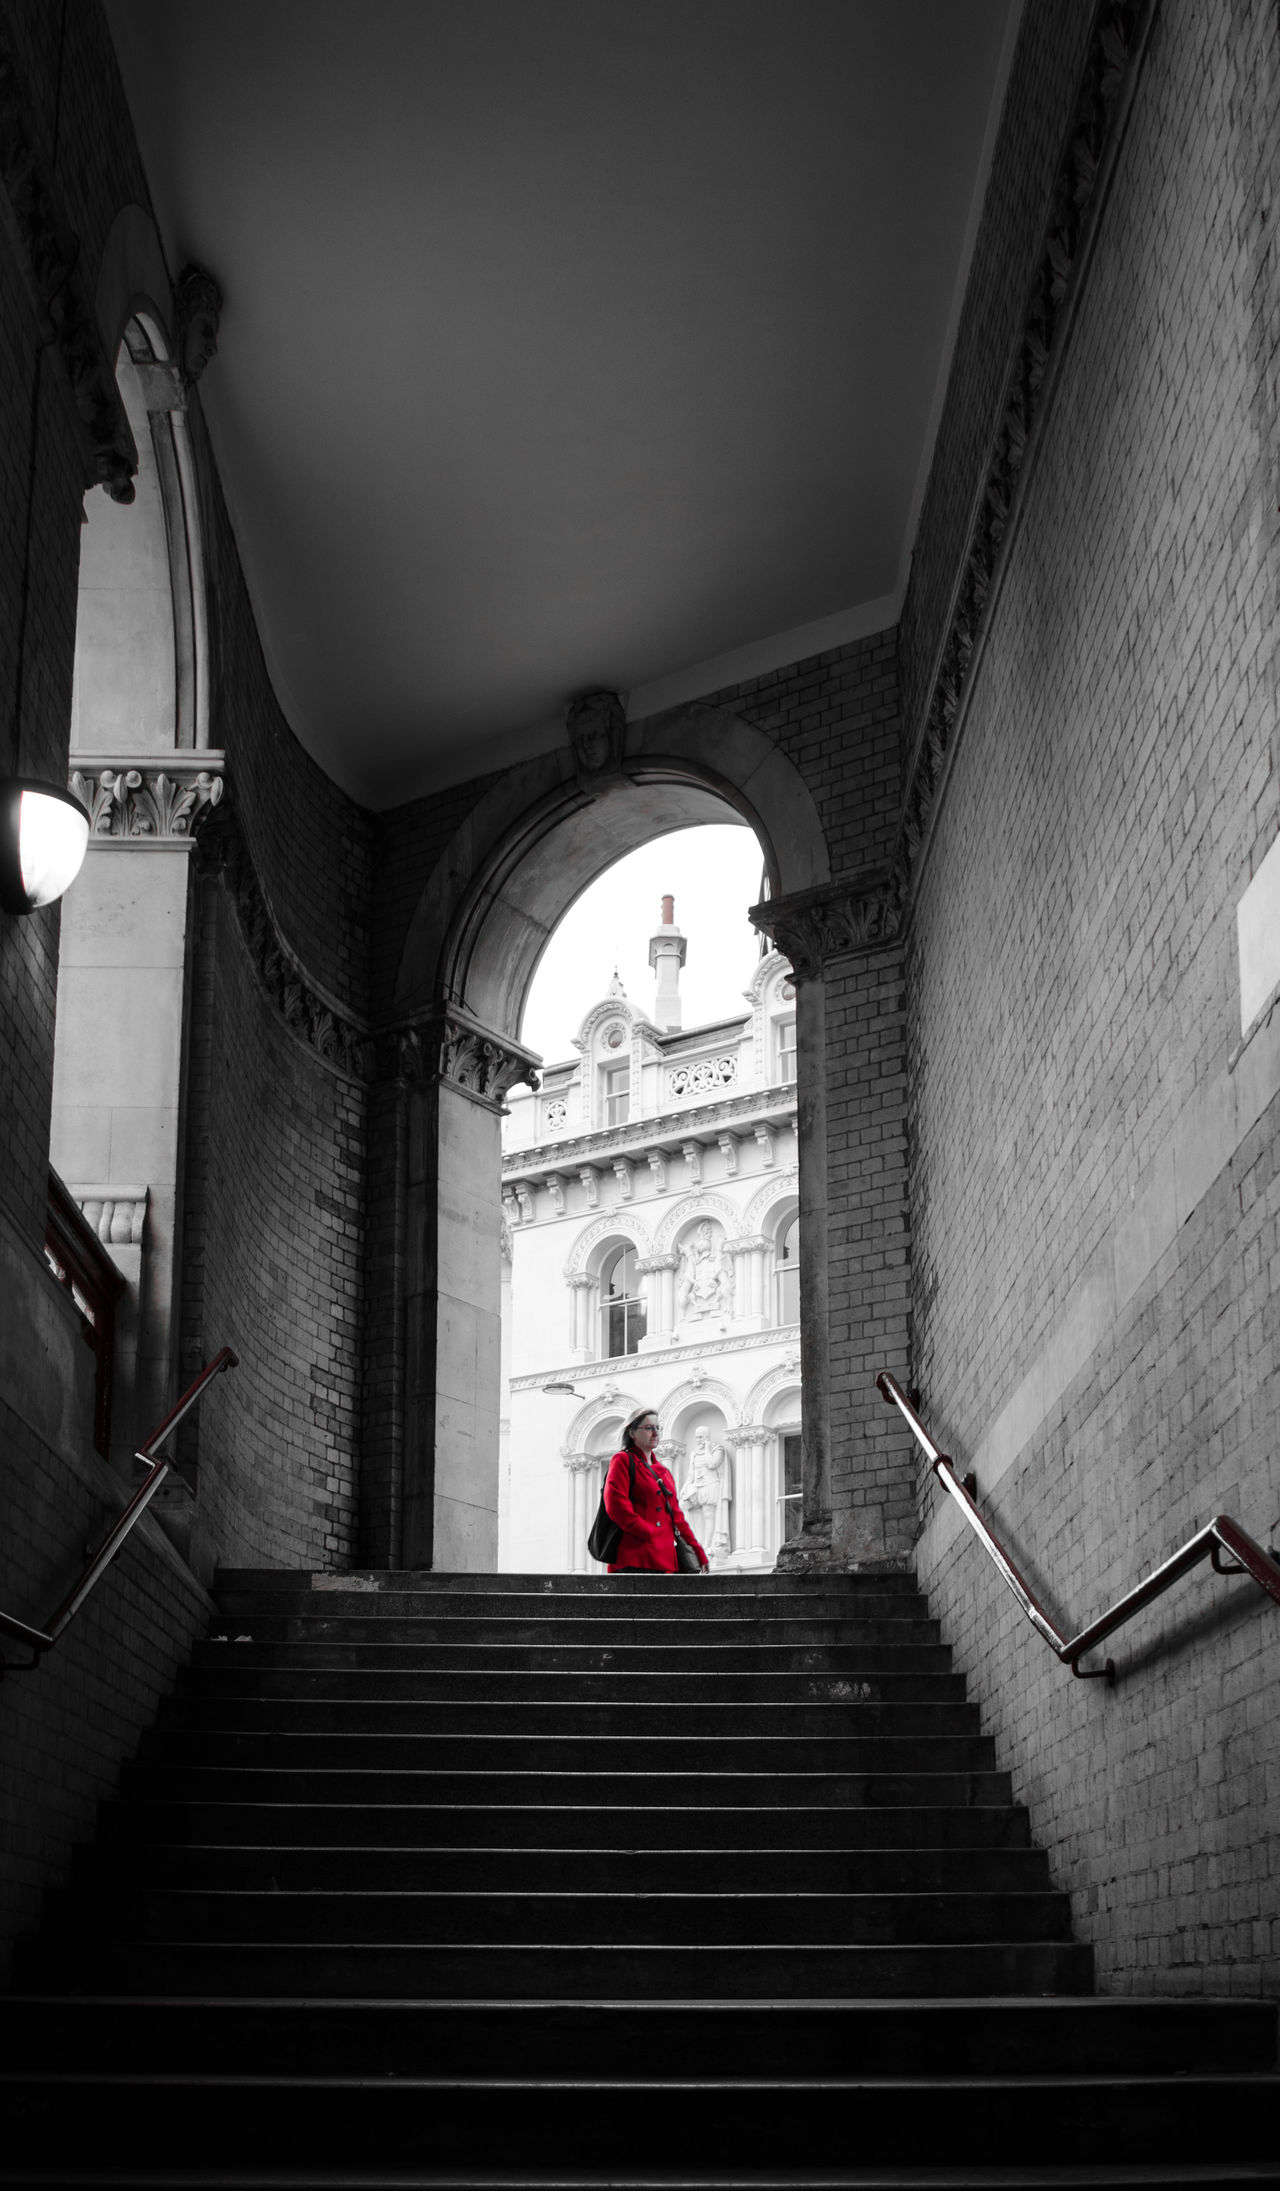 Arch Arched Architecture Building Exterior Built Structure Entrance Holborn Viaduct Incidental People London Low Angle View Moving Up Railing Red Staircase Stairs Steps Steps And Staircases The Way Forward